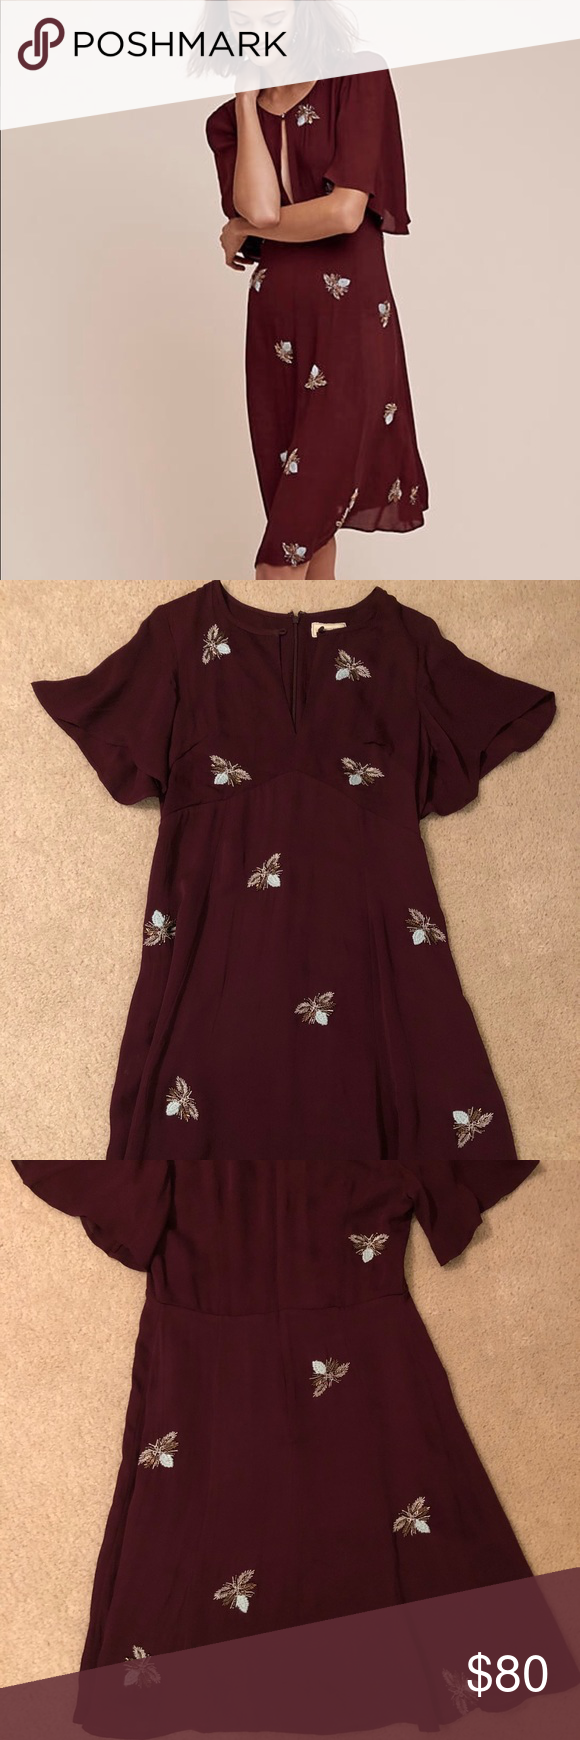 67b9d1428ee5 Anthro beaded firefly dress size 4 great condition Maroon dress with firefly  embroidery (comes with packet of replacement sequins) size 4 US.